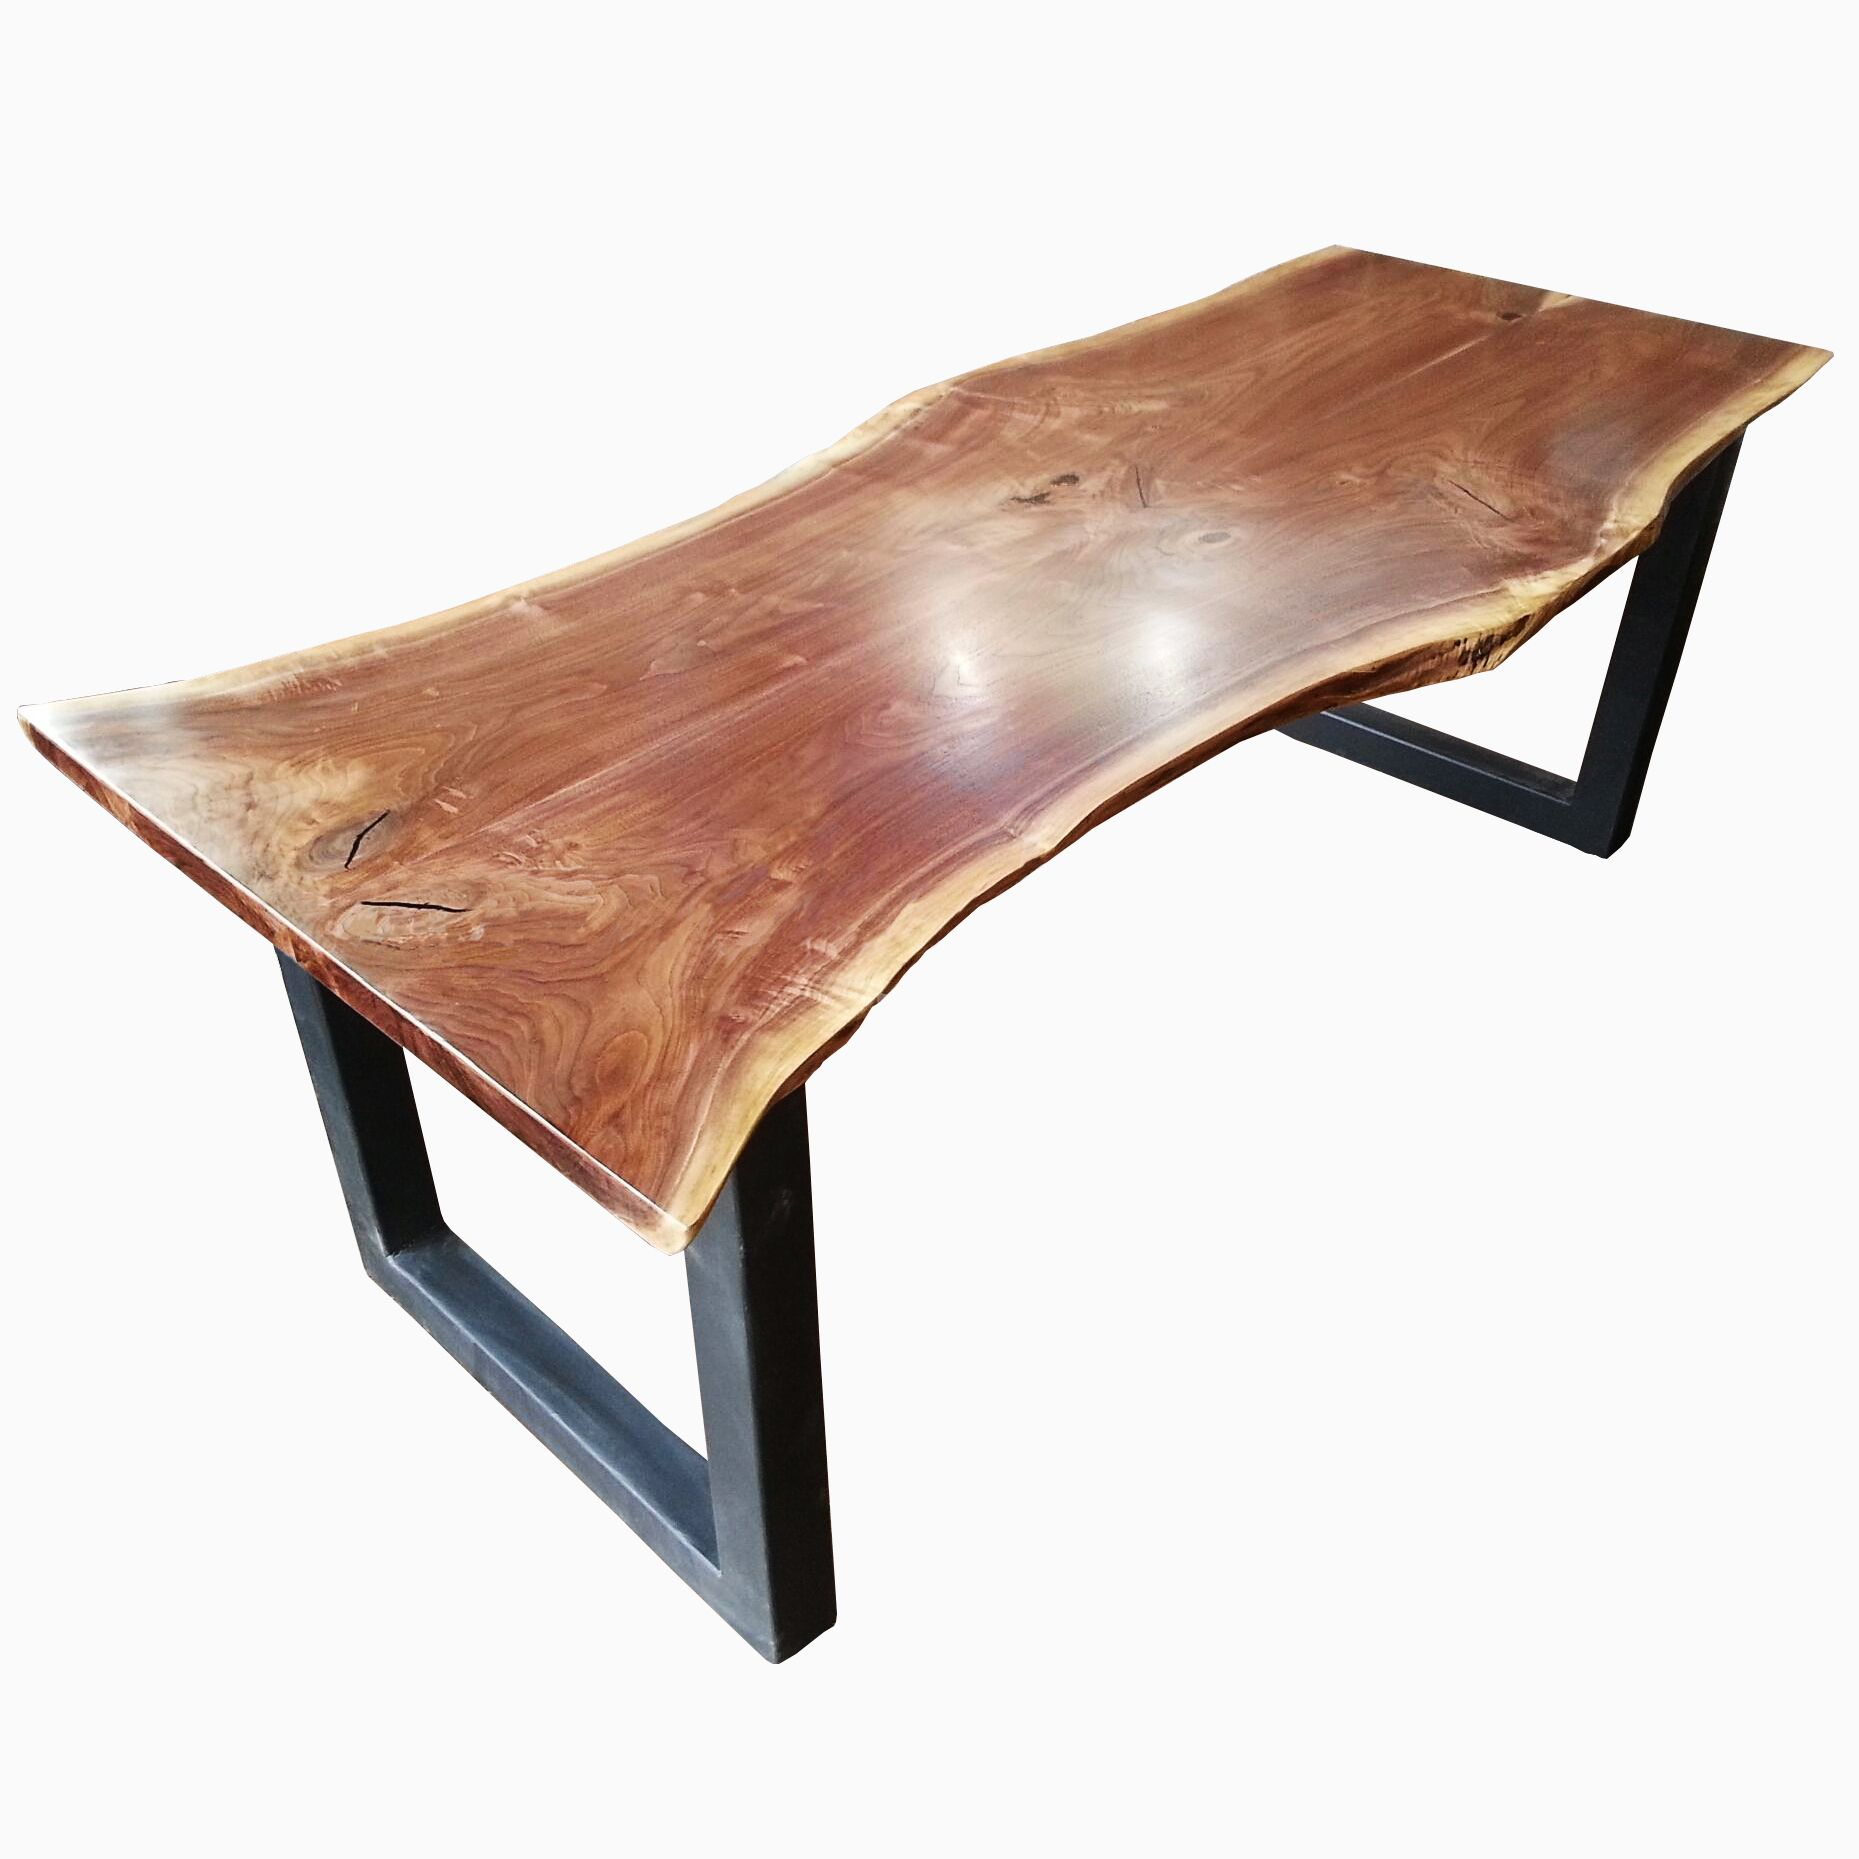 Walnut live edge dining table - Natural Live Edge Dining Table Industrial Modern Dining Table Walnut Dining Table